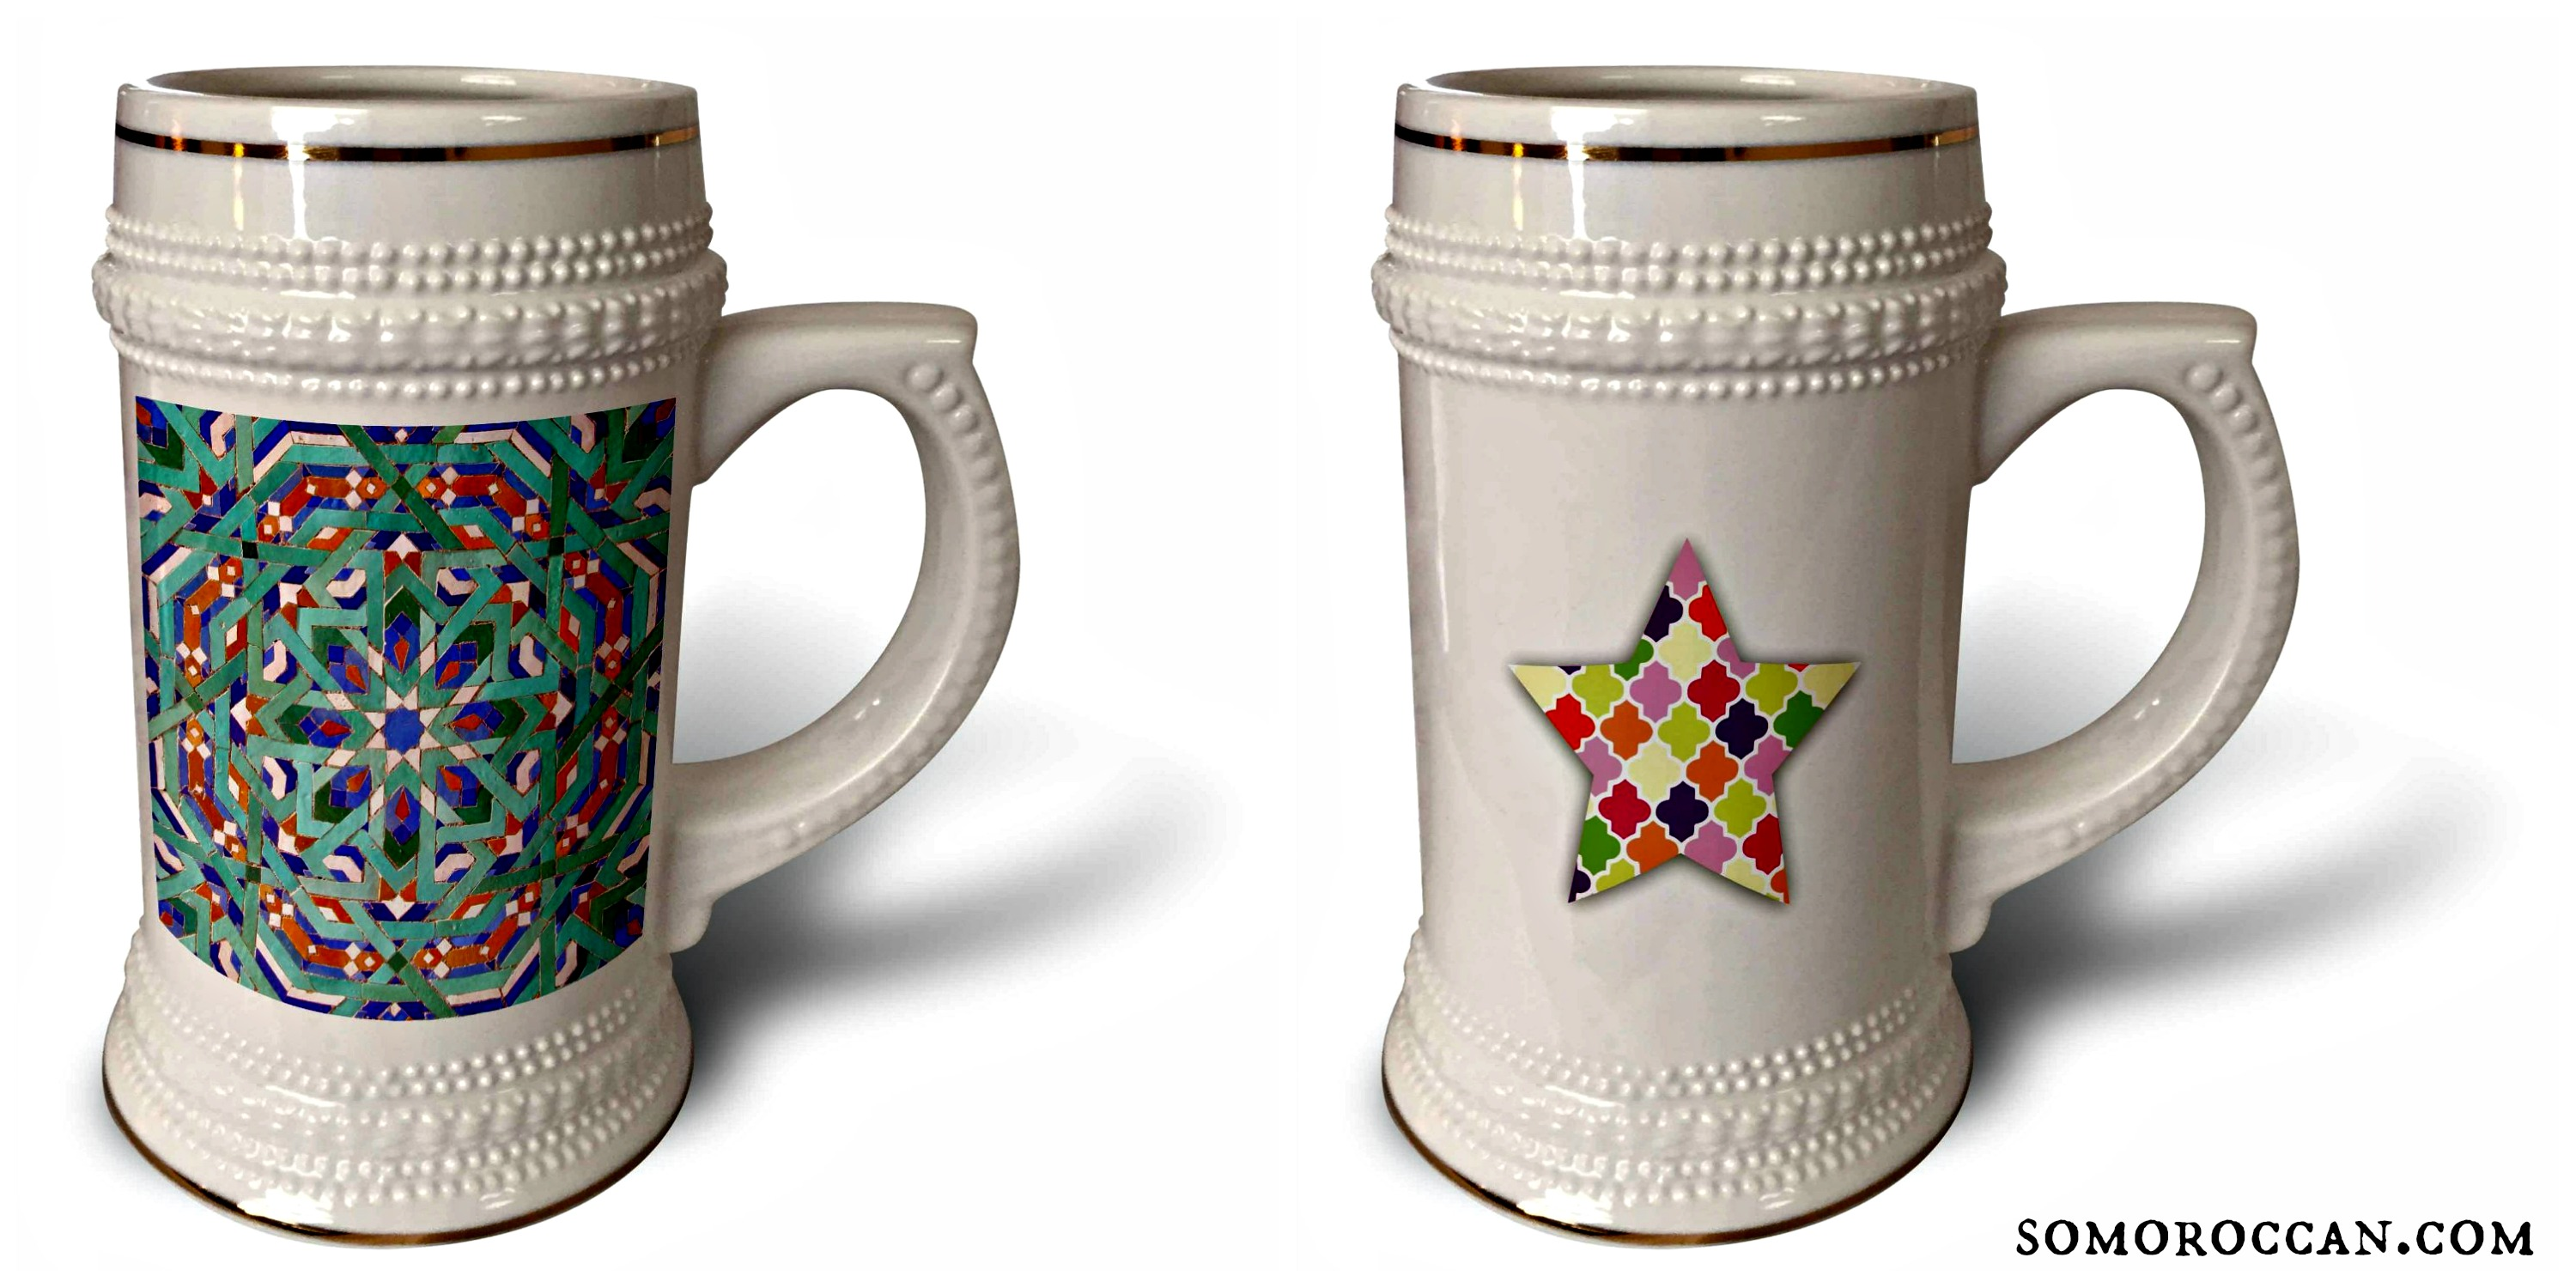 10 Moroccan Cool Coffee Mugs You 39 Ll Love To Have Somoroccan